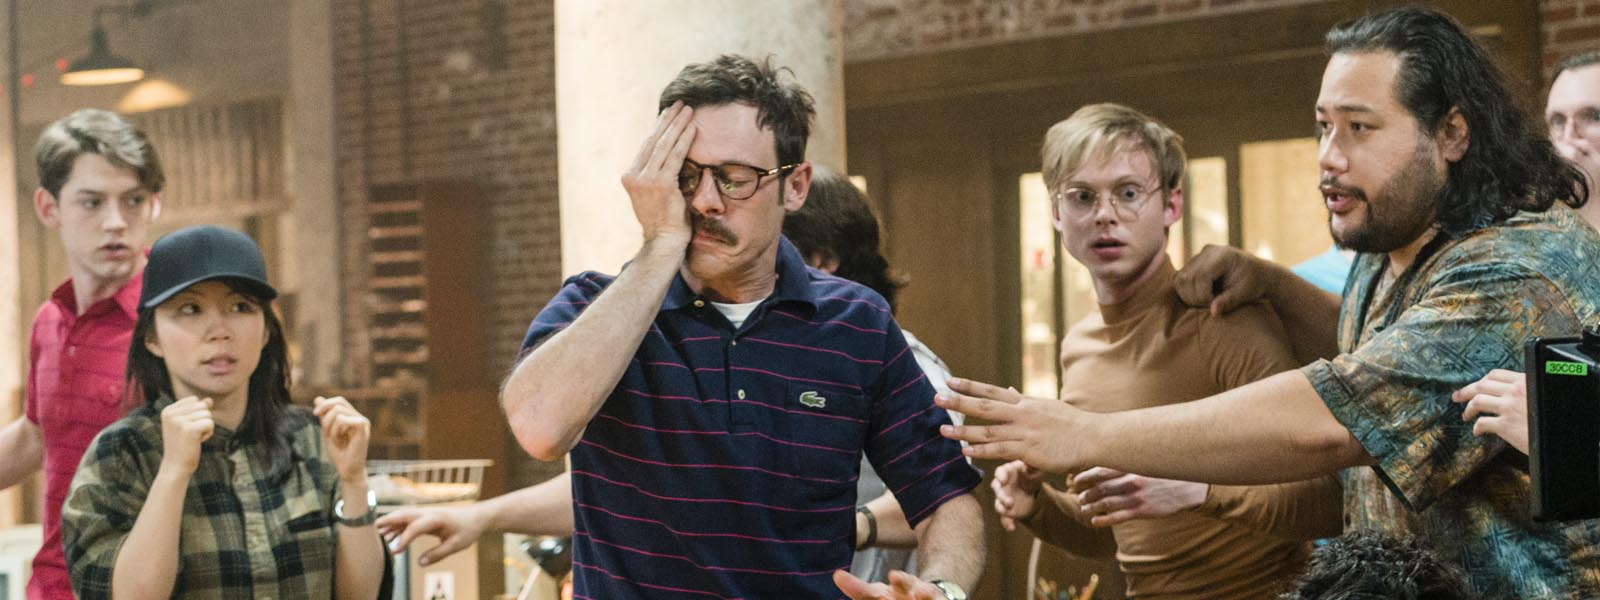 Halt-and-catch-fire-season-3-post-304-gordon-clark-scoot-mcnairy-800×600